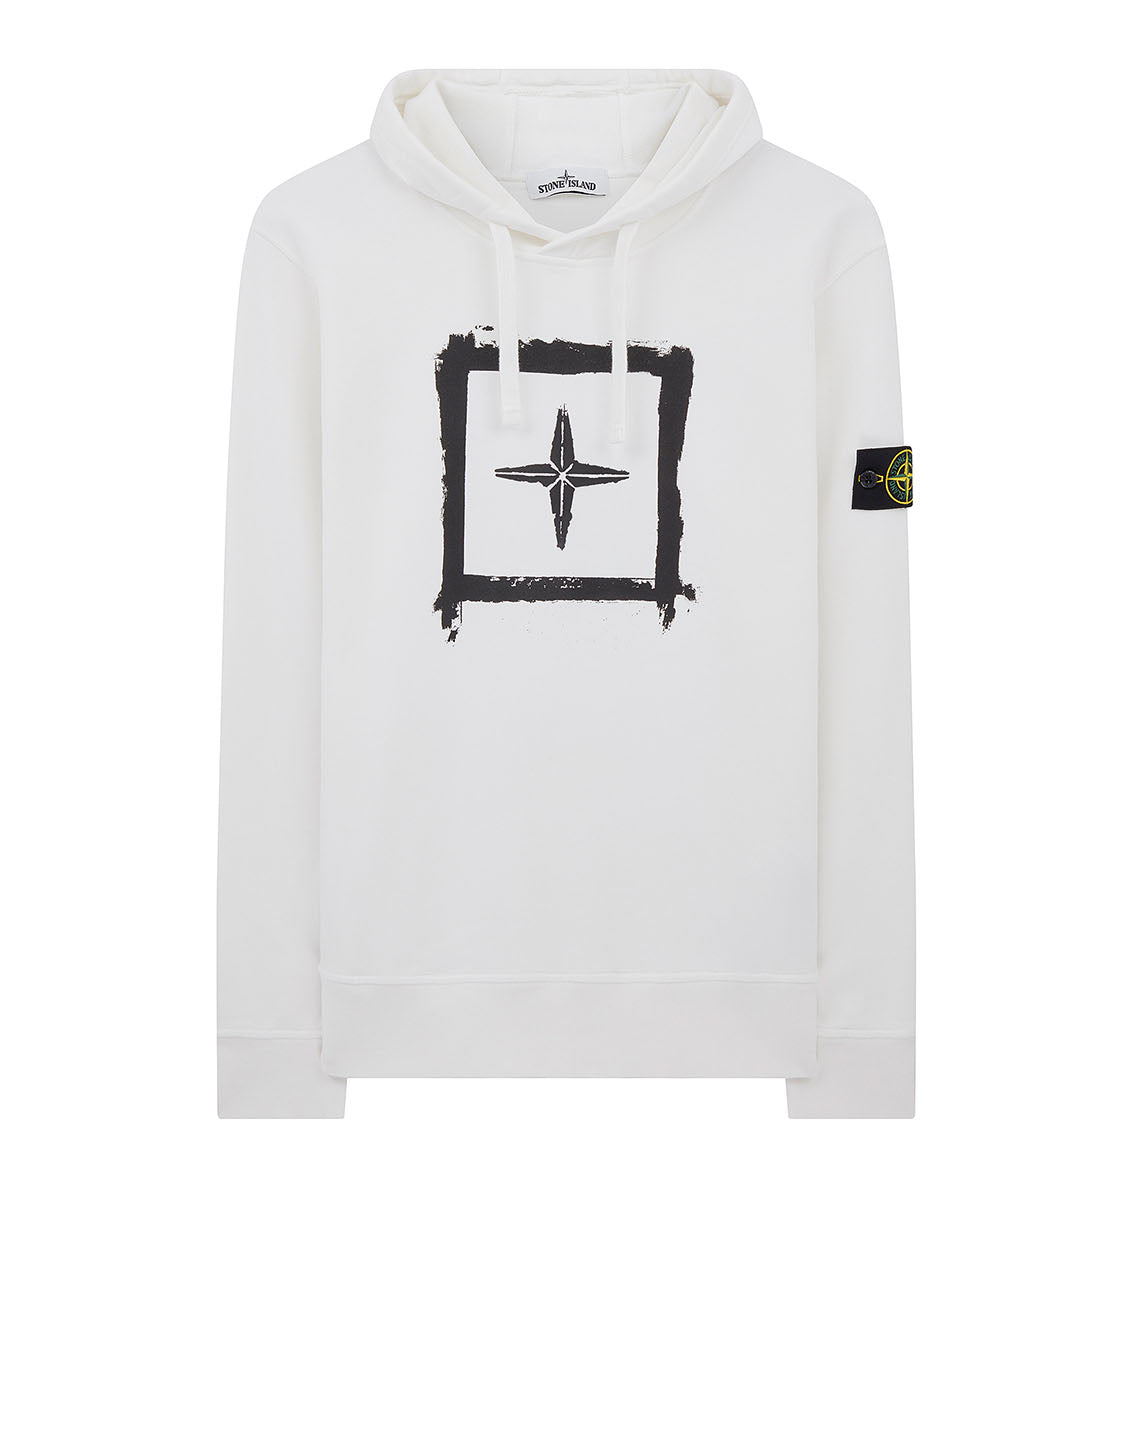 65894 'STENCIL SWEATSHIRT' in White